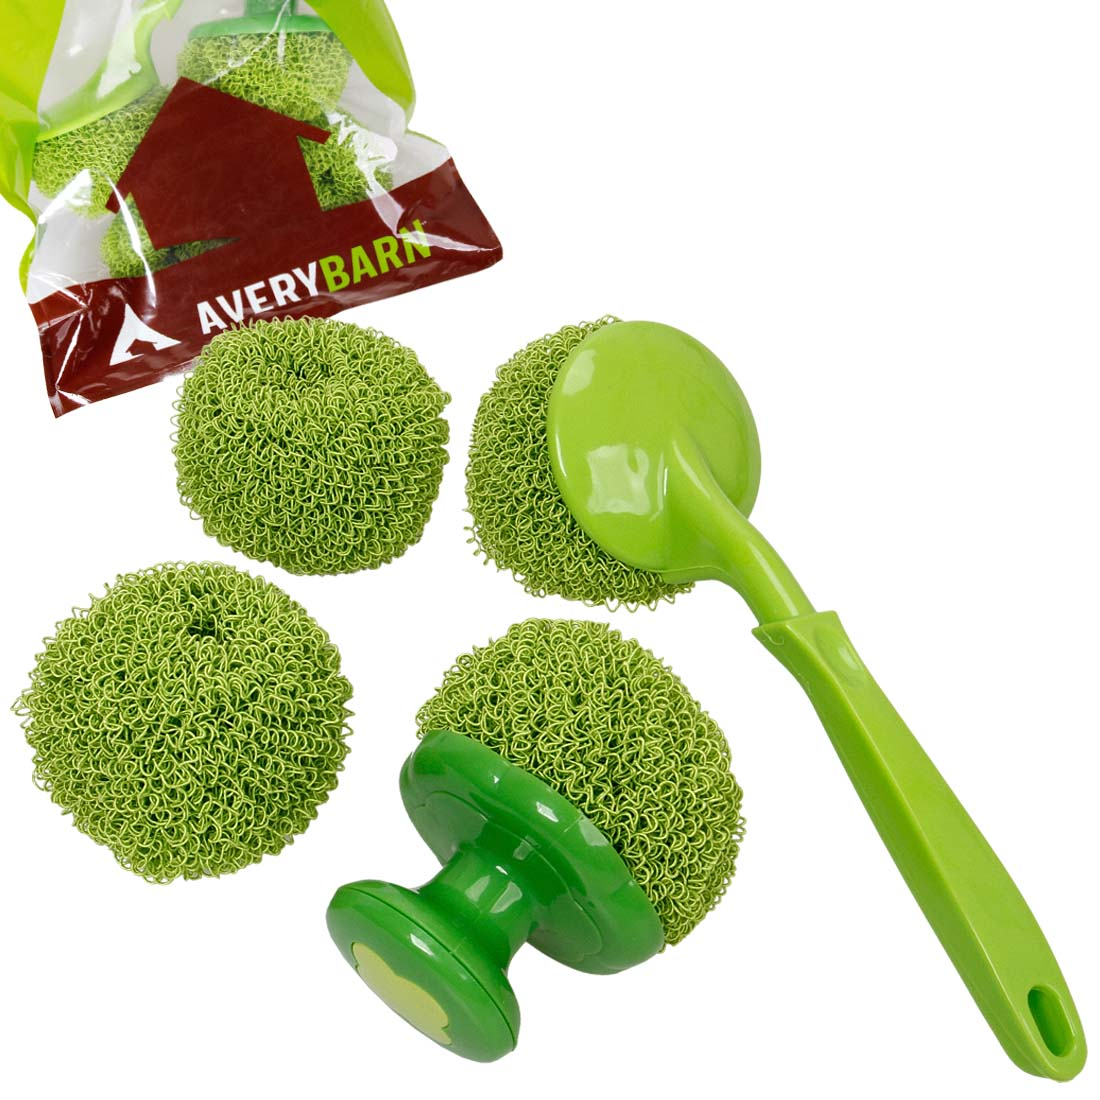 Avery Barn 4pc Kitchen Cleaning Scrubber And Dishwashing Brush Ball Tools Bundle